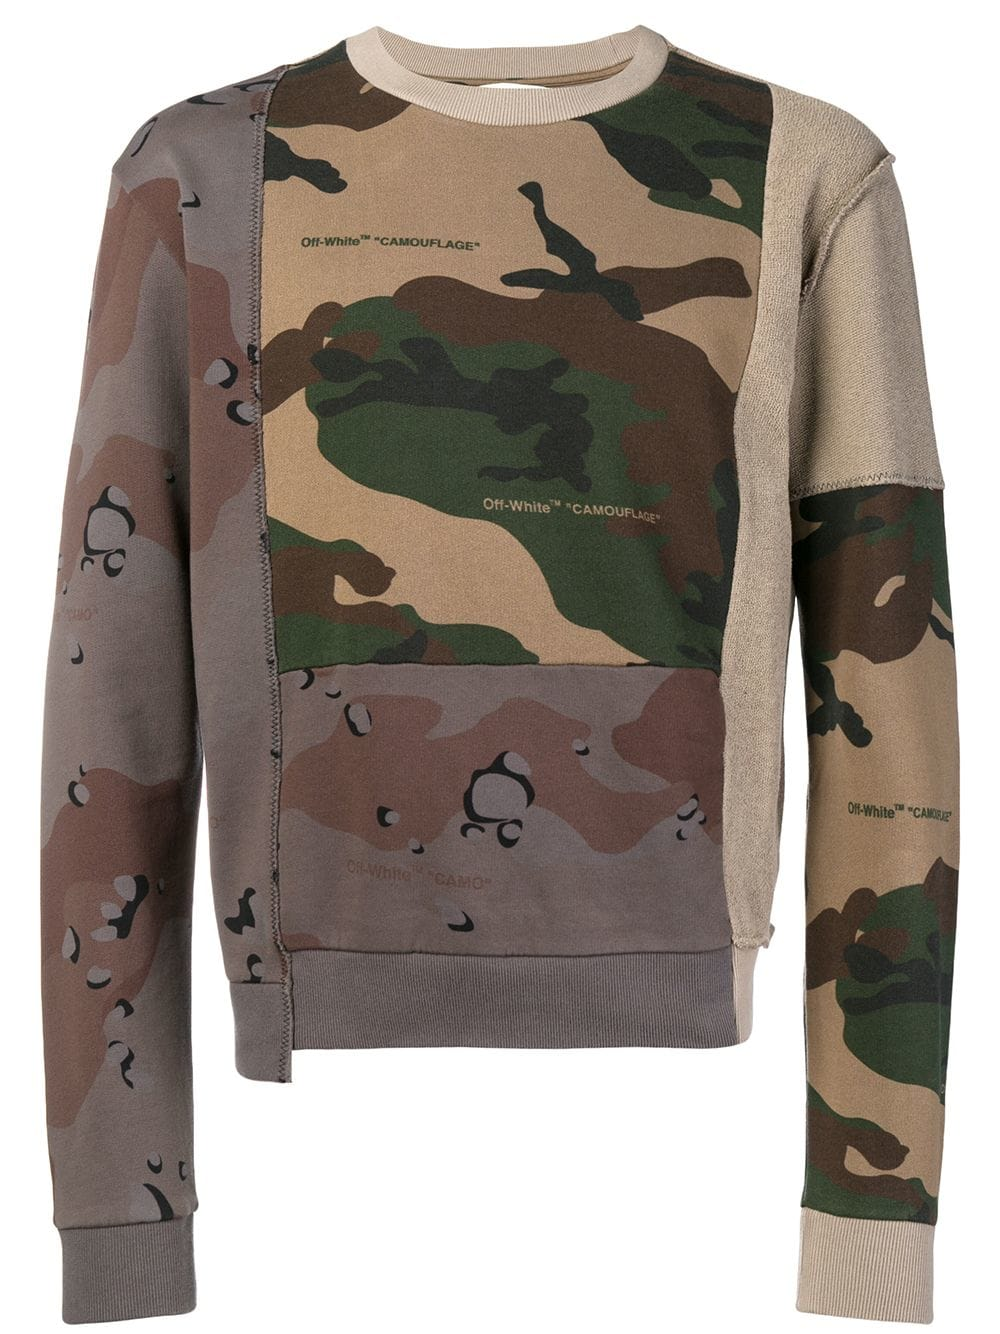 Off White Reconstructed Camouflage Print Sweatshirt Farfetch Printed Sweatshirts Sweatshirts Cotton Sweatshirts [ 1334 x 1000 Pixel ]